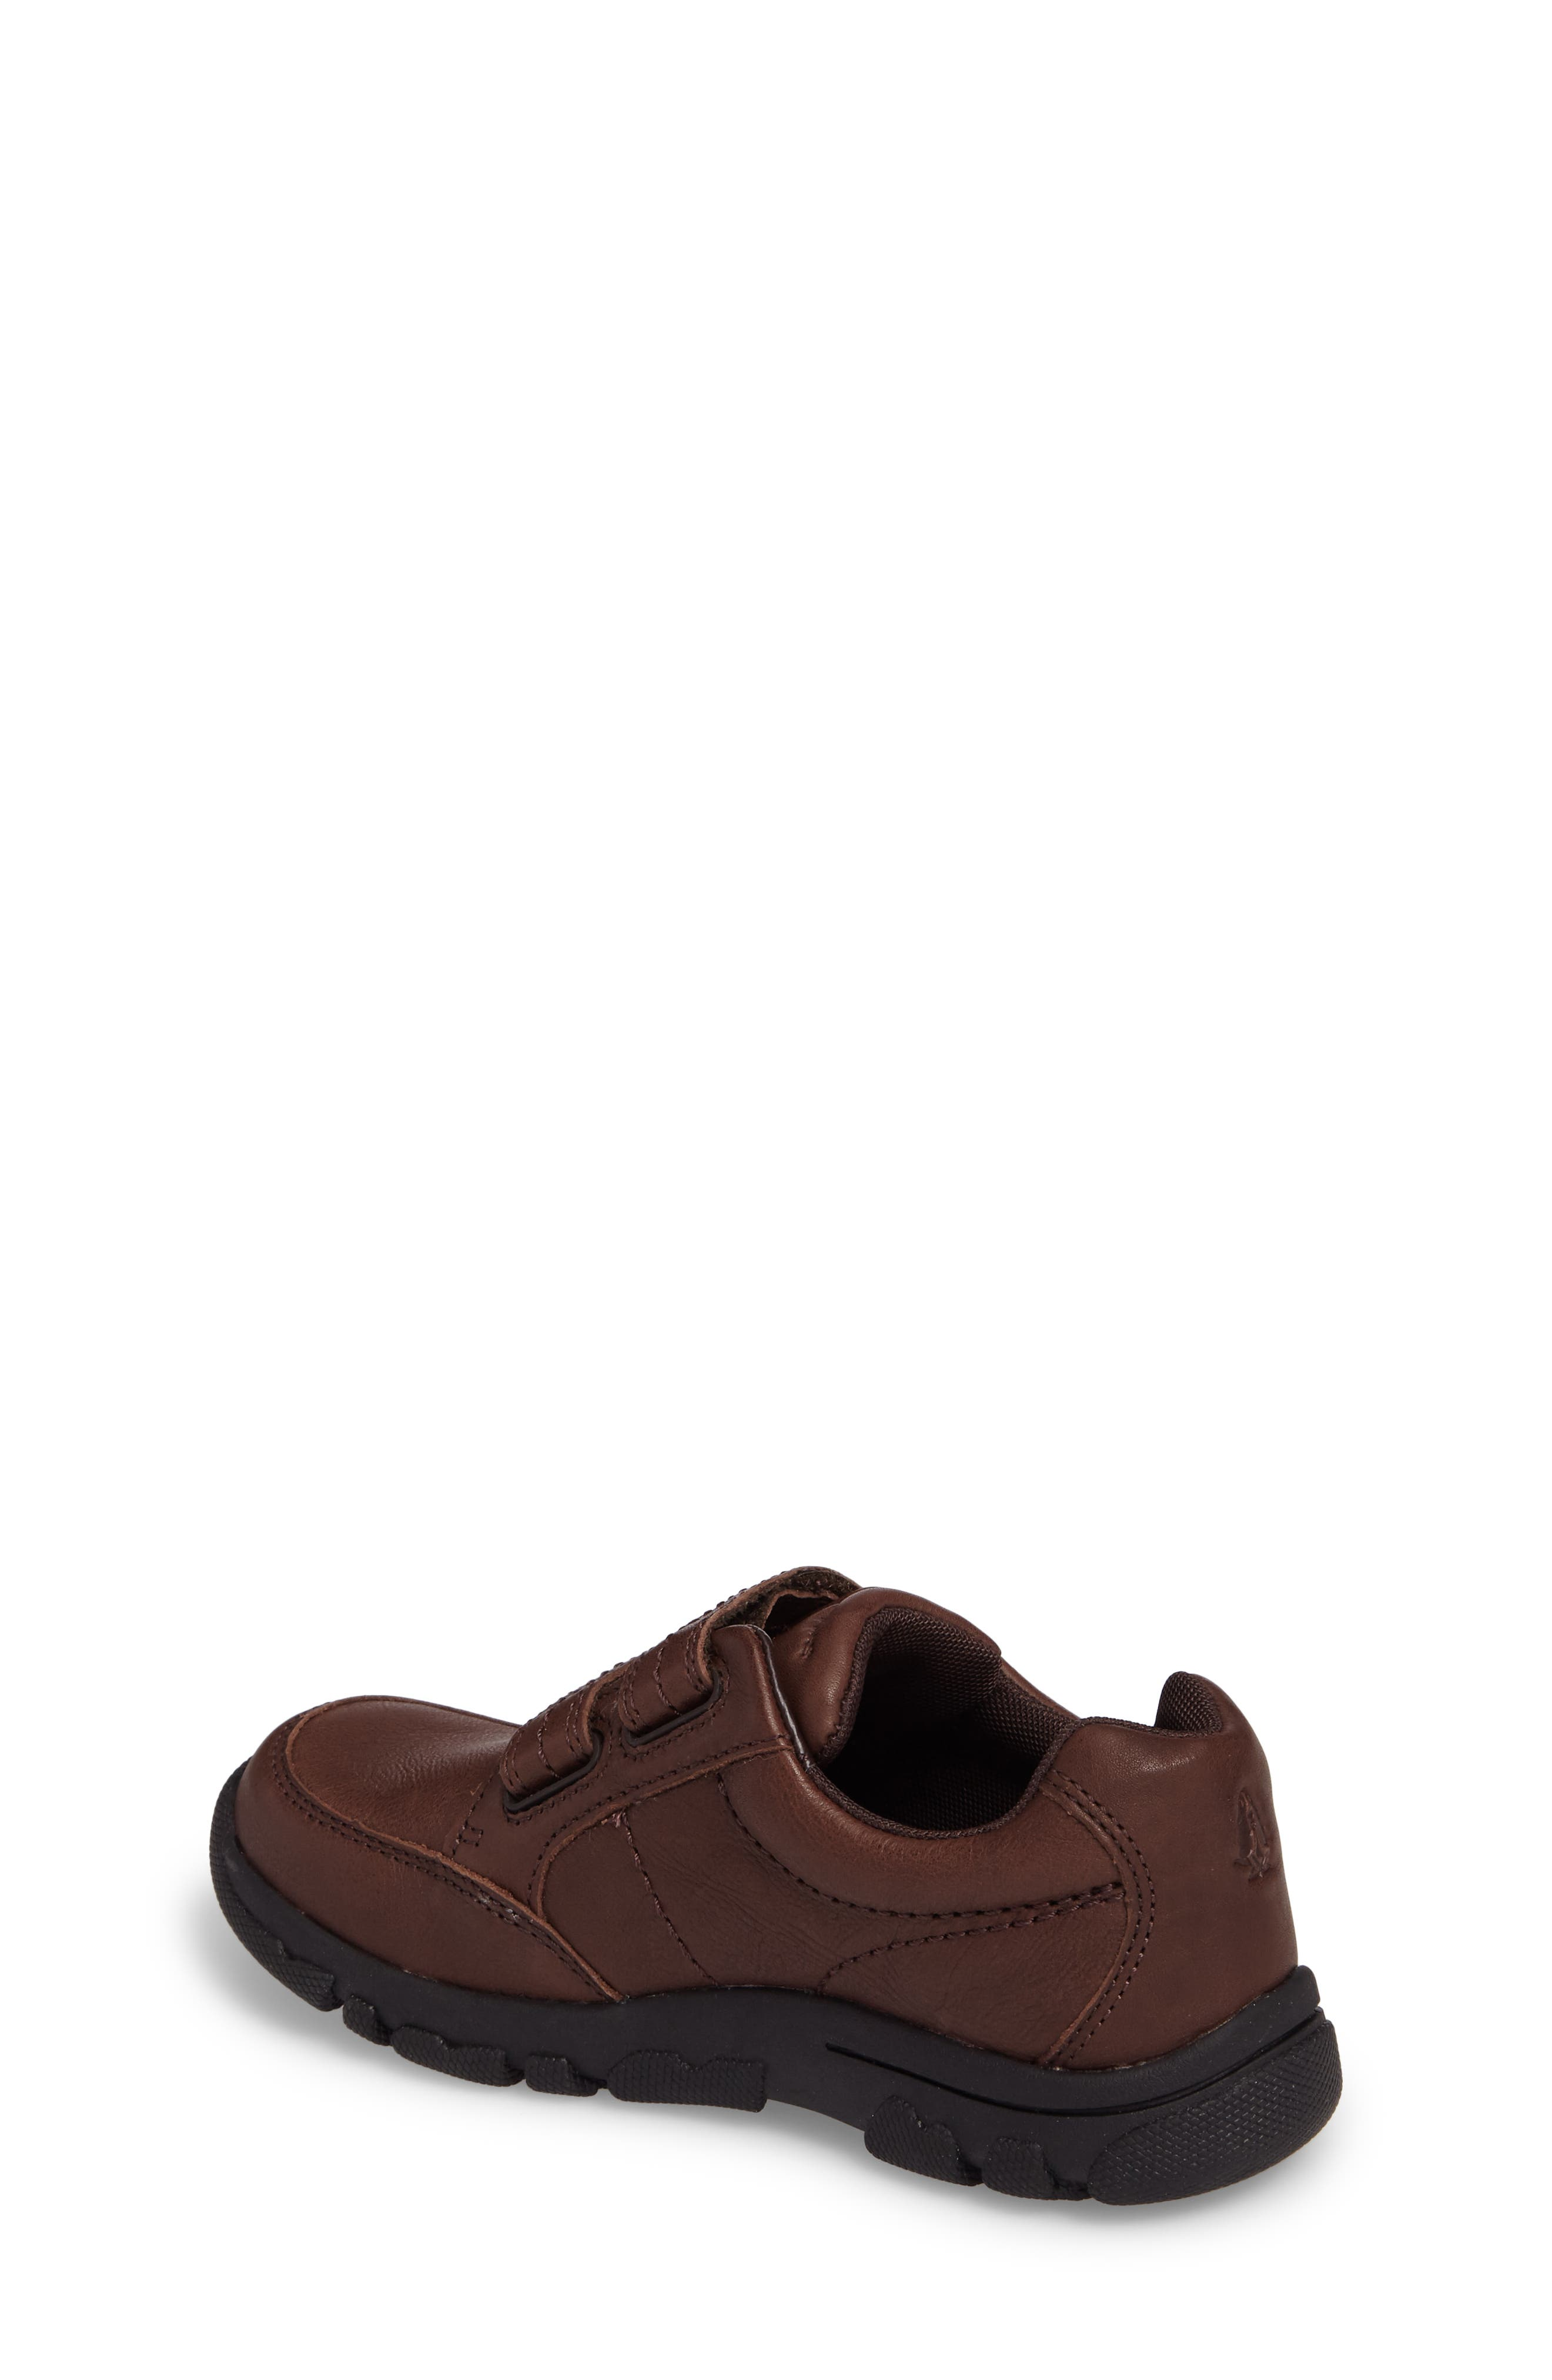 Jace Dress Sneaker,                             Alternate thumbnail 2, color,                             Brown Leather